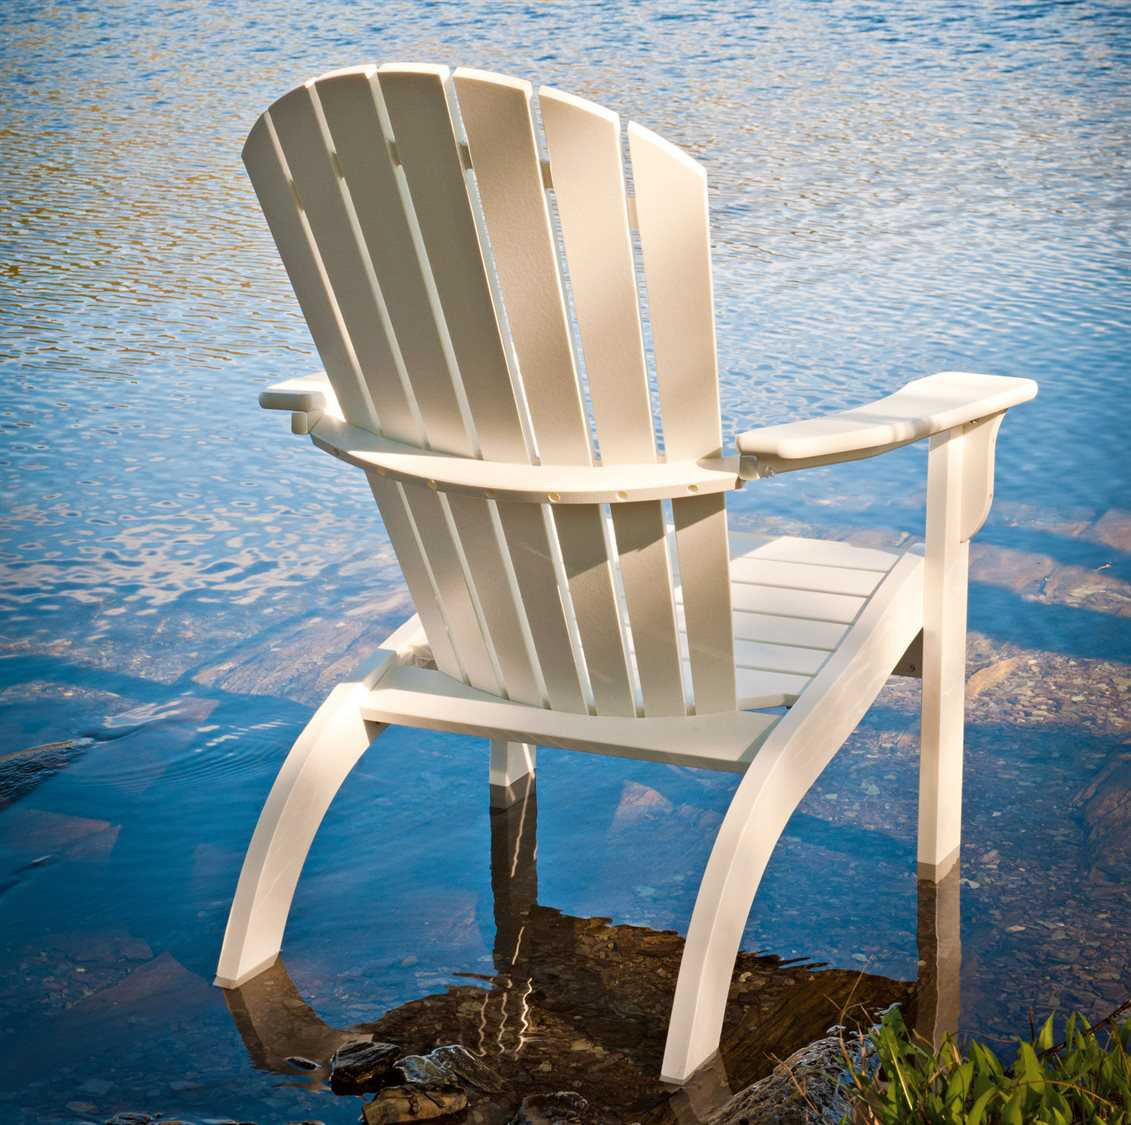 Best ideas about Recycled Plastic Patio Furniture . Save or Pin Telescope Casual Adirondack MGP Recycled Plastic Lounge Now.